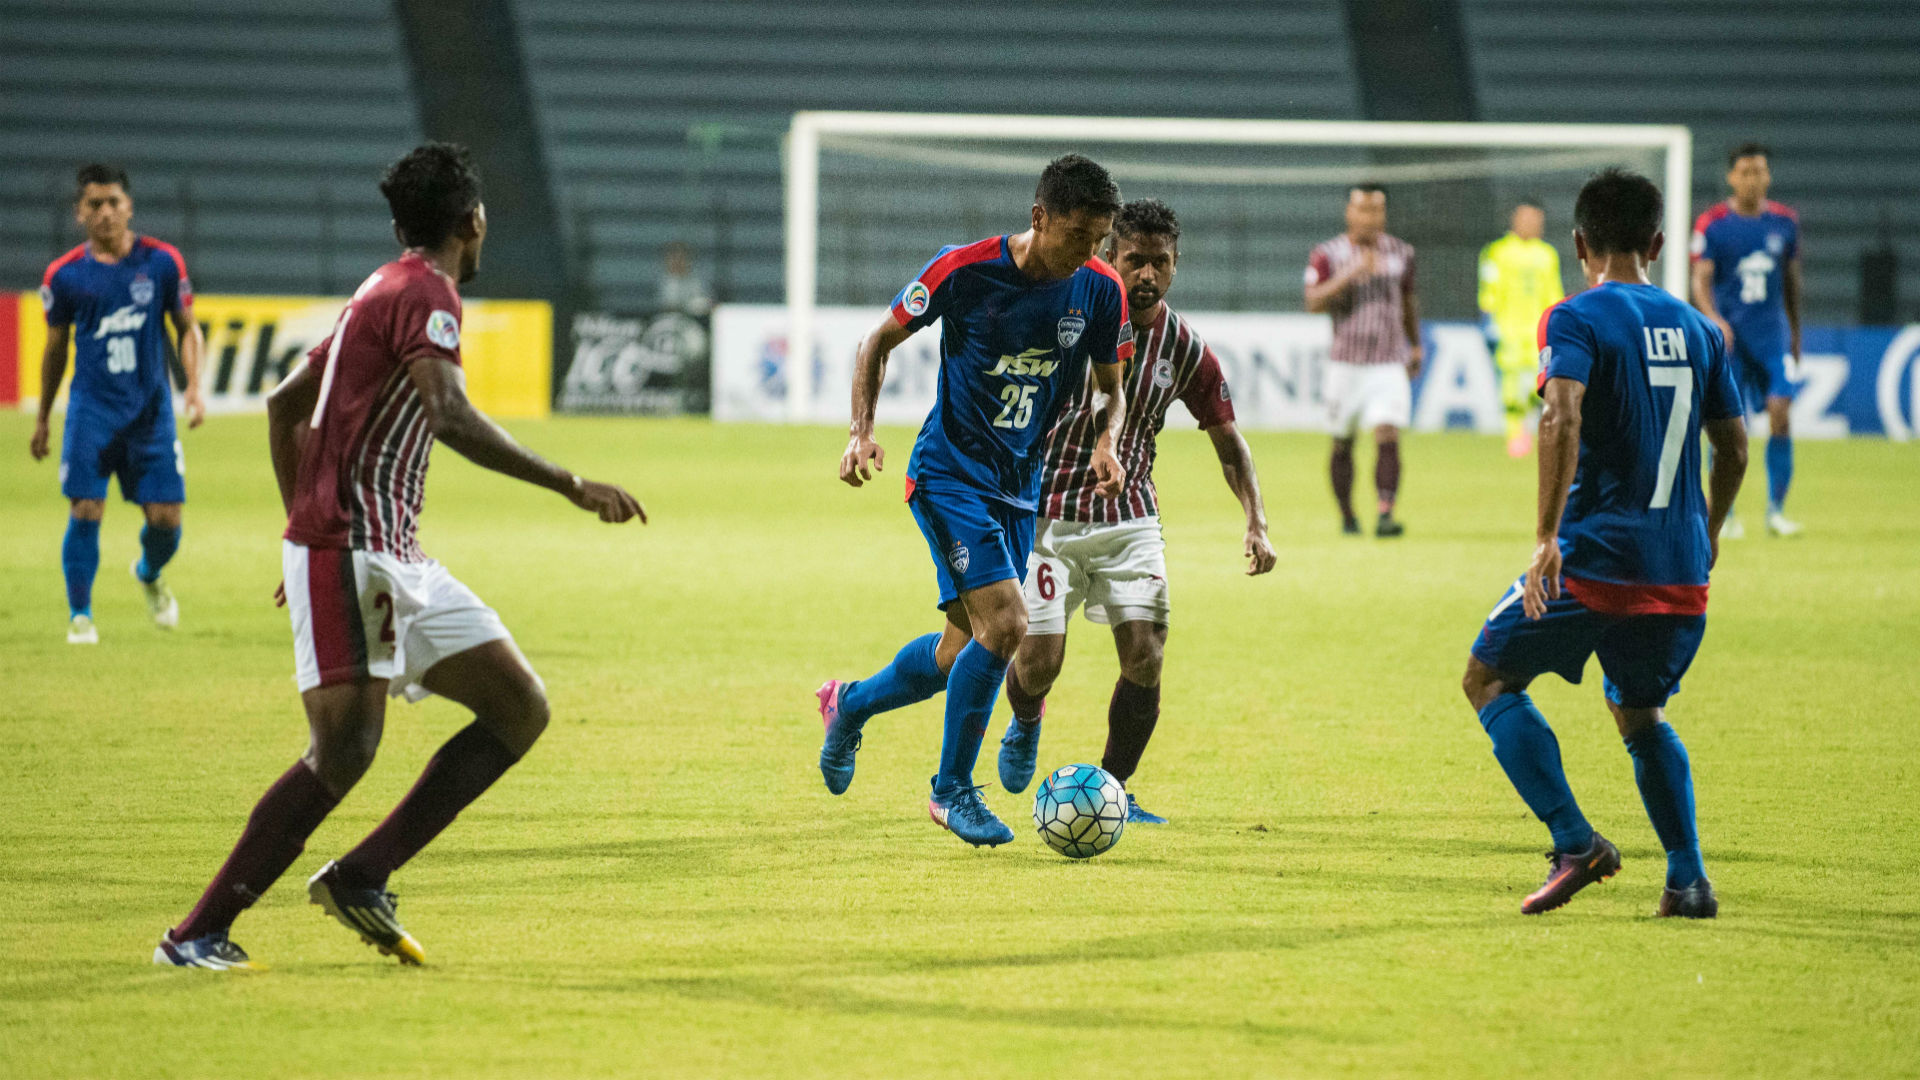 Indian football: Clubs should target AFC Champions League group stage